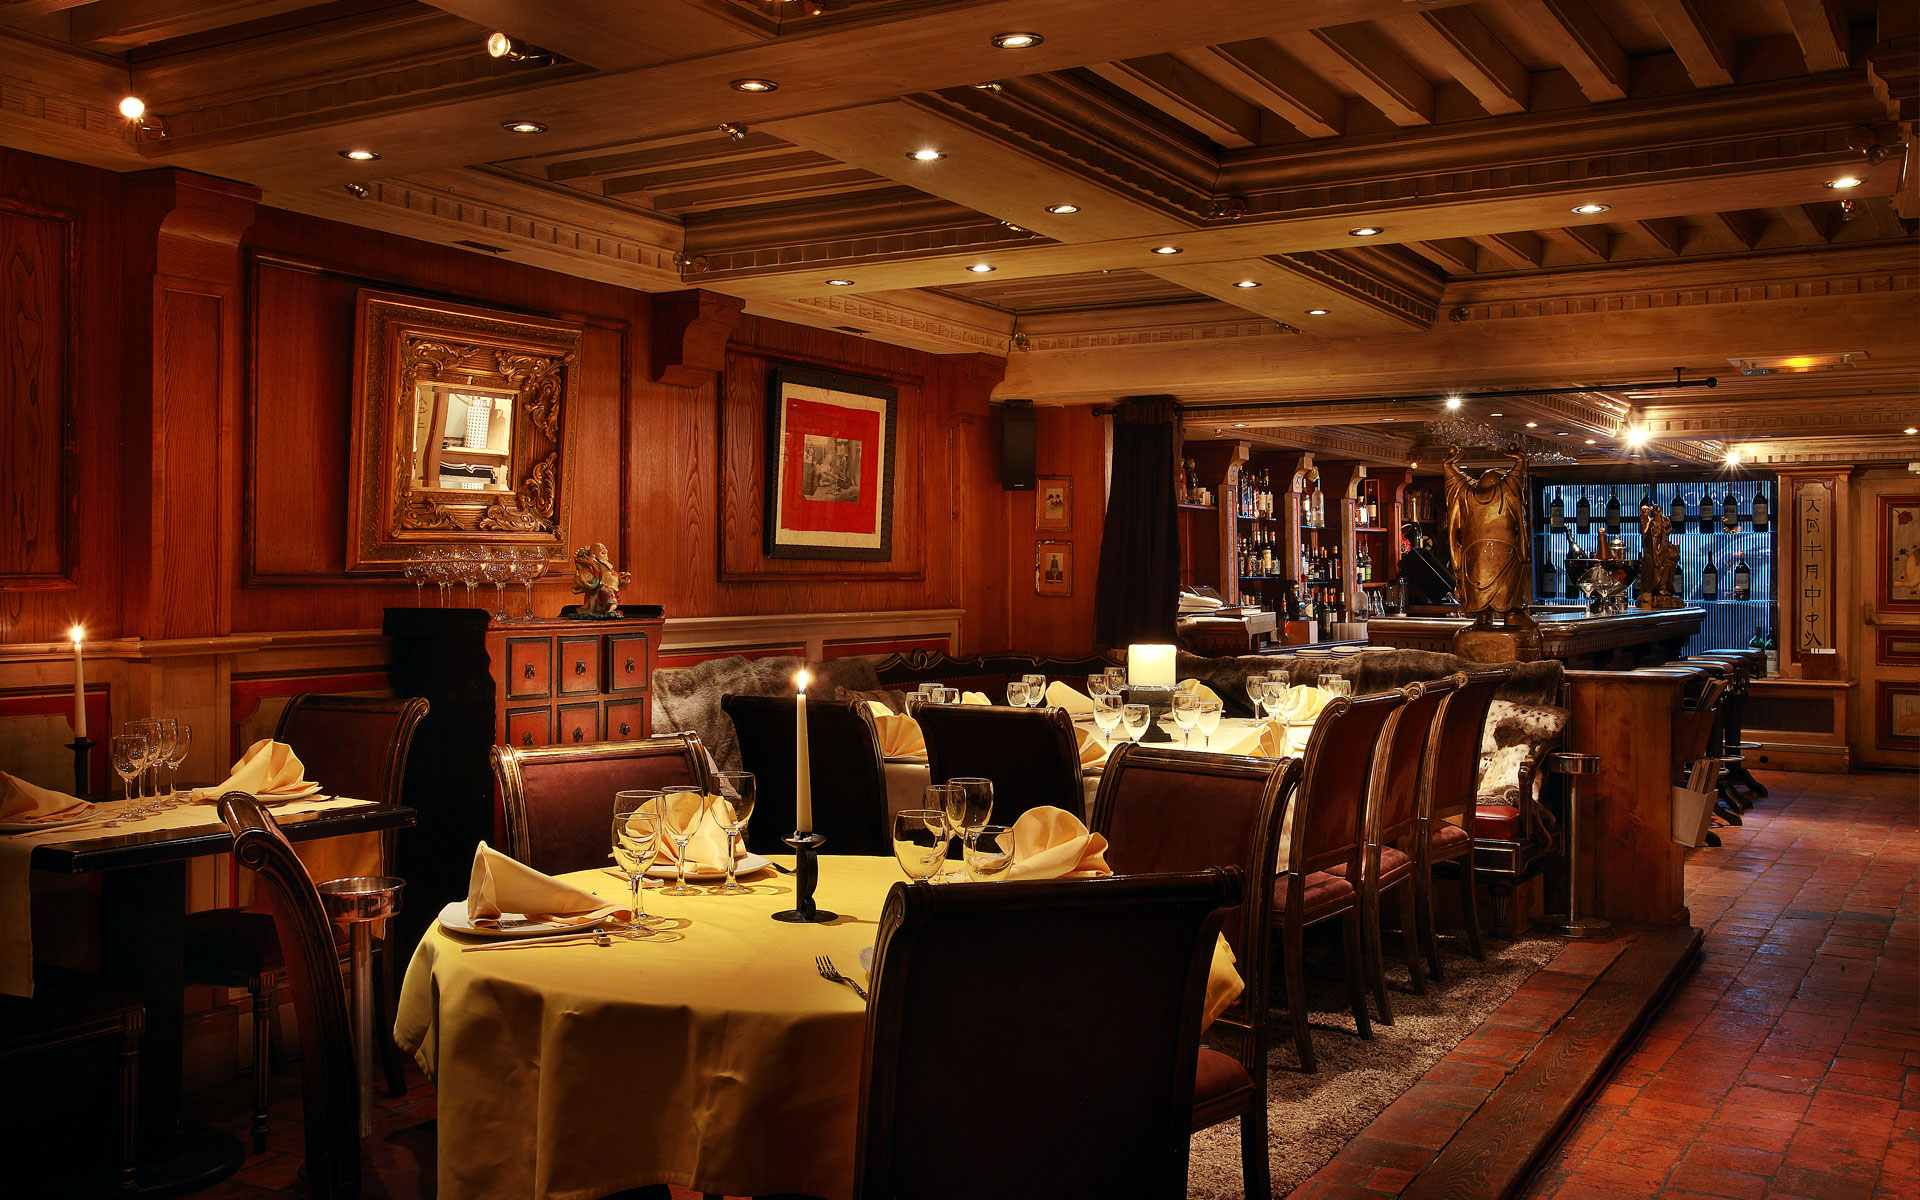 302/Site Maison Tournier/Restaurant/Grand Café Courchevel/grand_cafe_courchevel_restaurant_5.jpg